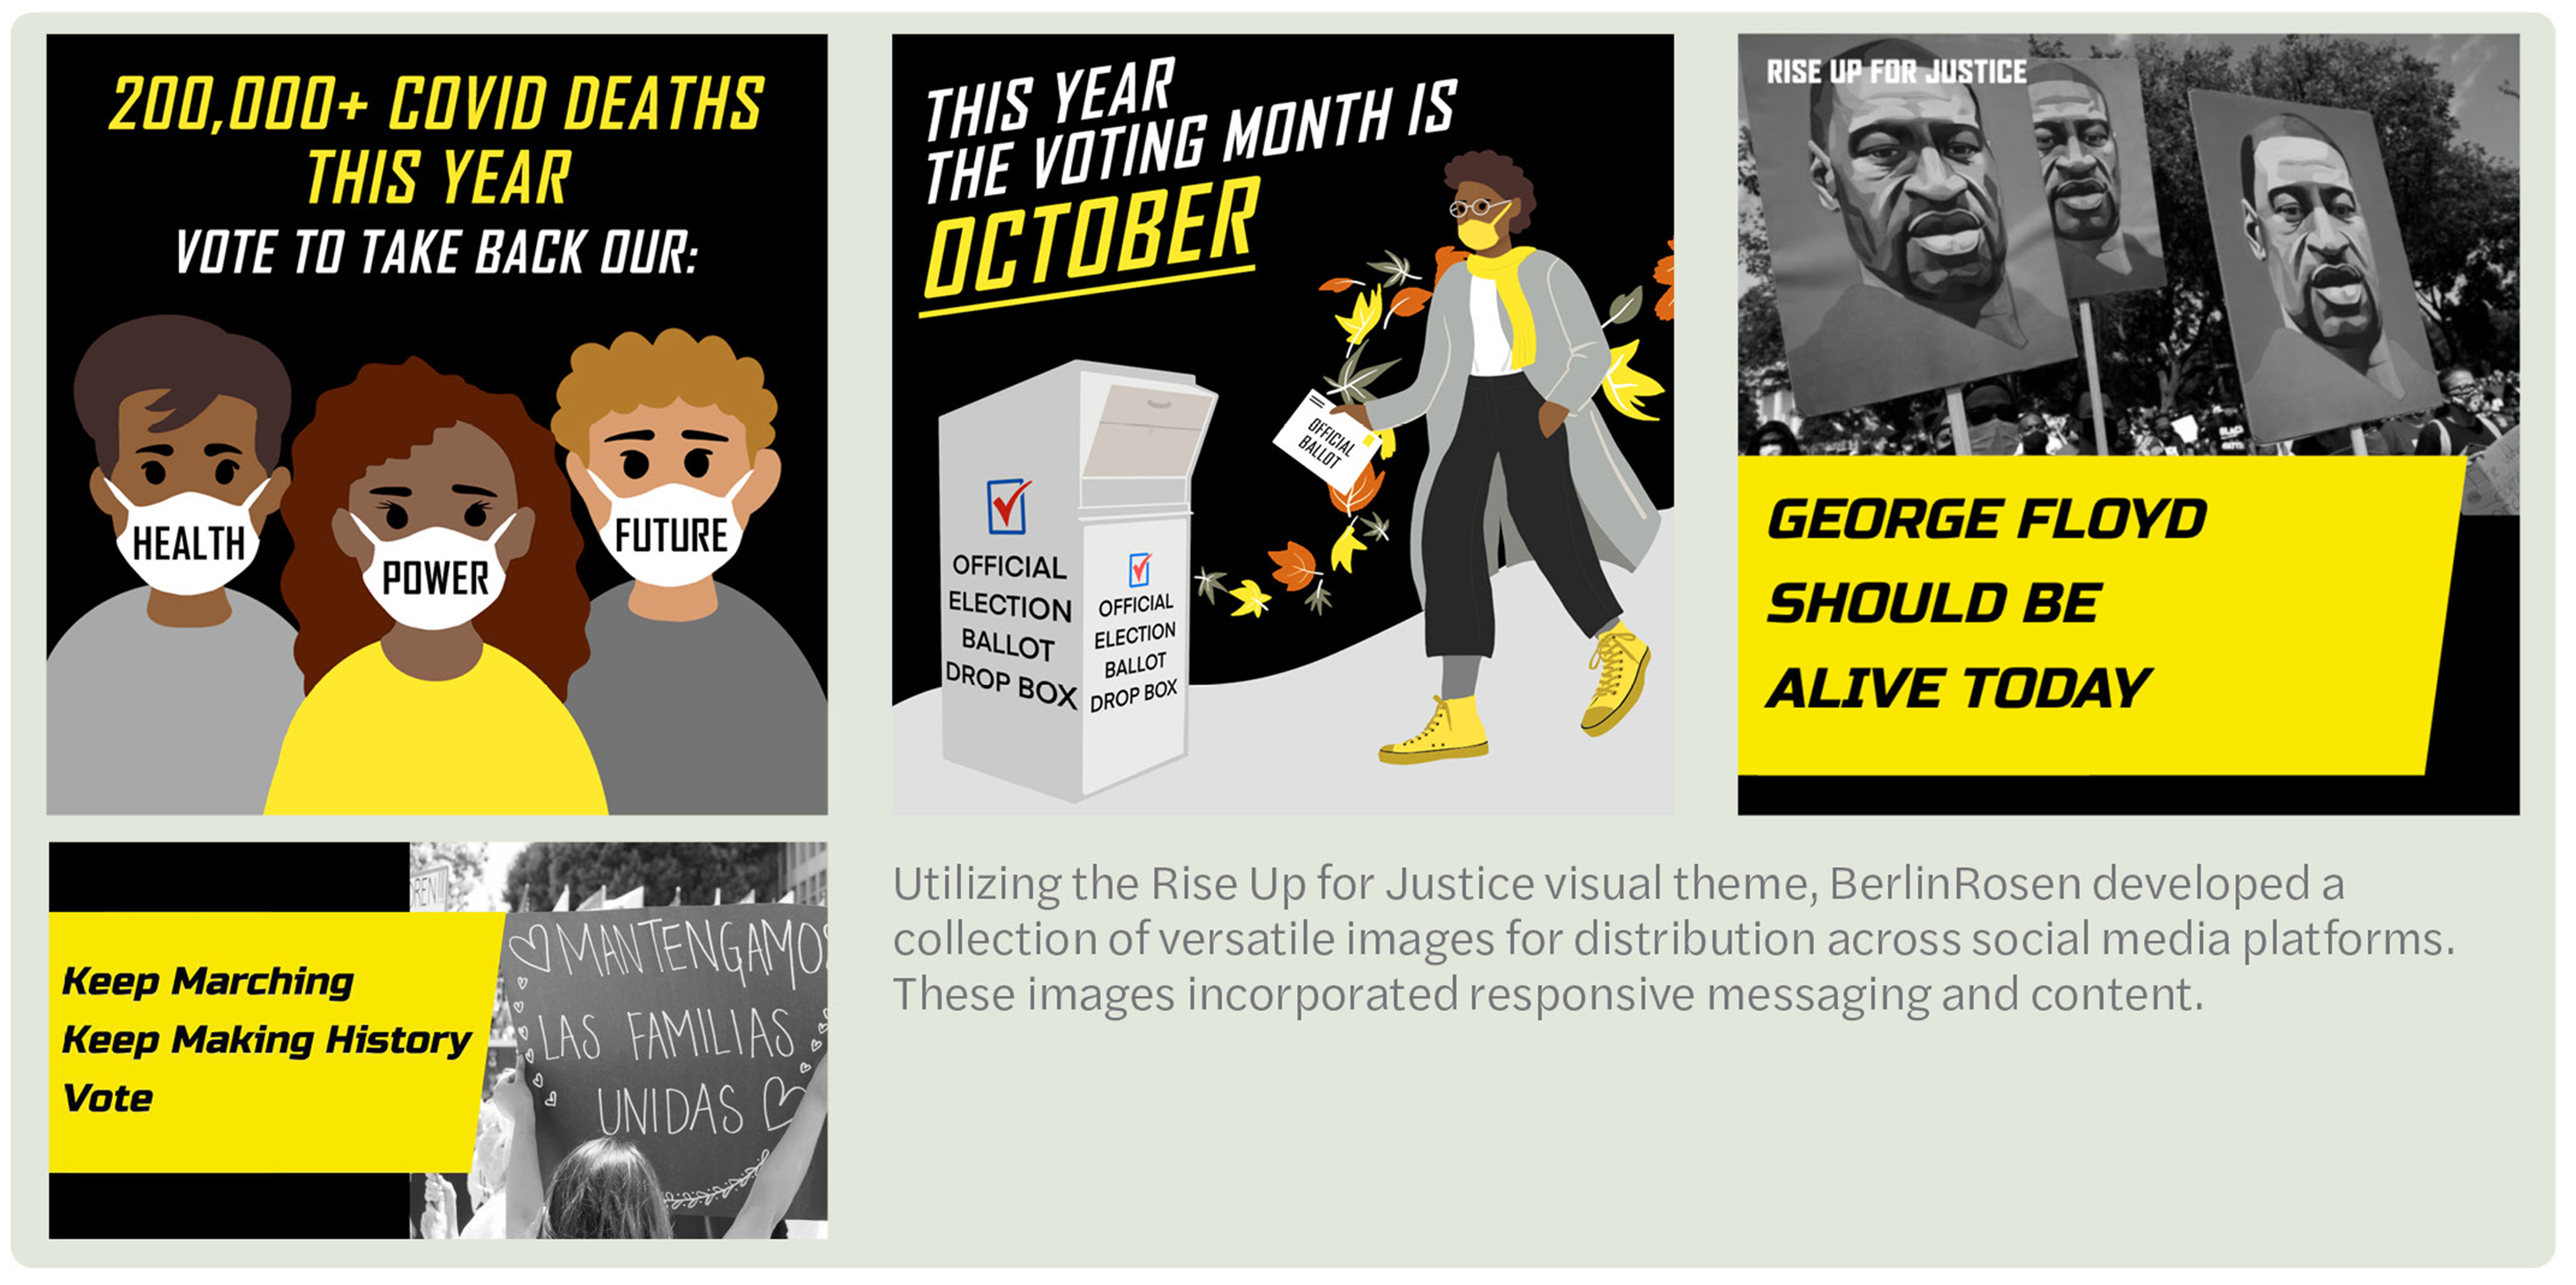 Utilizing the Rise Up for Justice visual theme, BerlinRosen developed a collection of versatile images for distribution across social media platforms. These images incorporated responsive messaging and content.